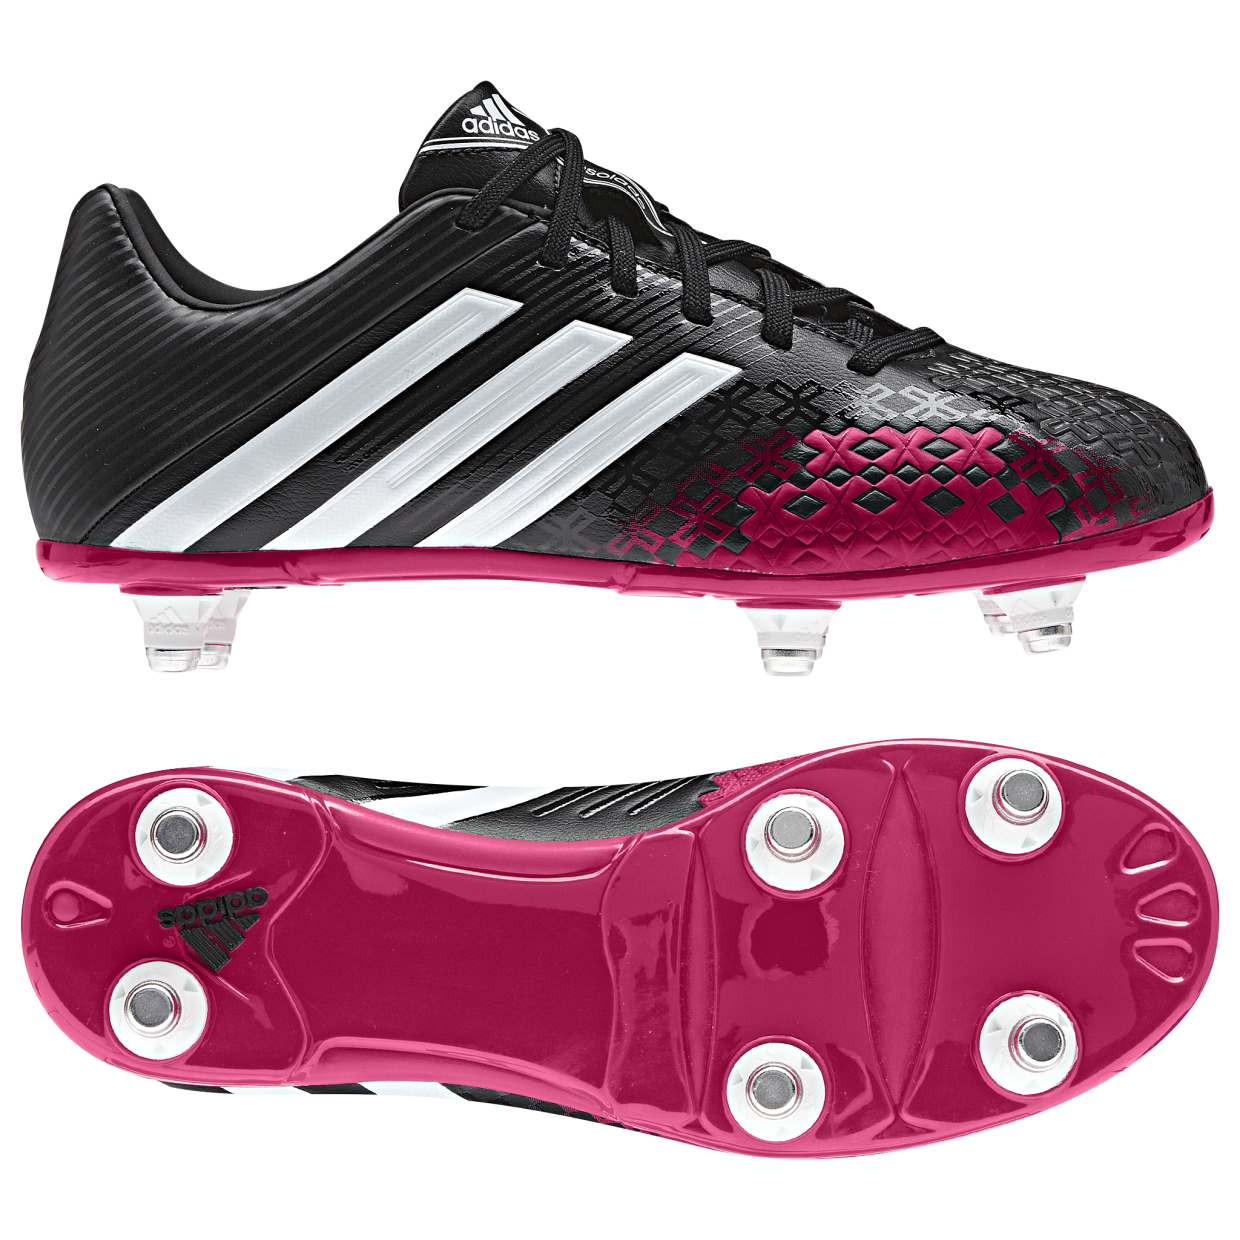 Adidas Predator Absolado LZ Soft Ground Football Boots - Kids Black